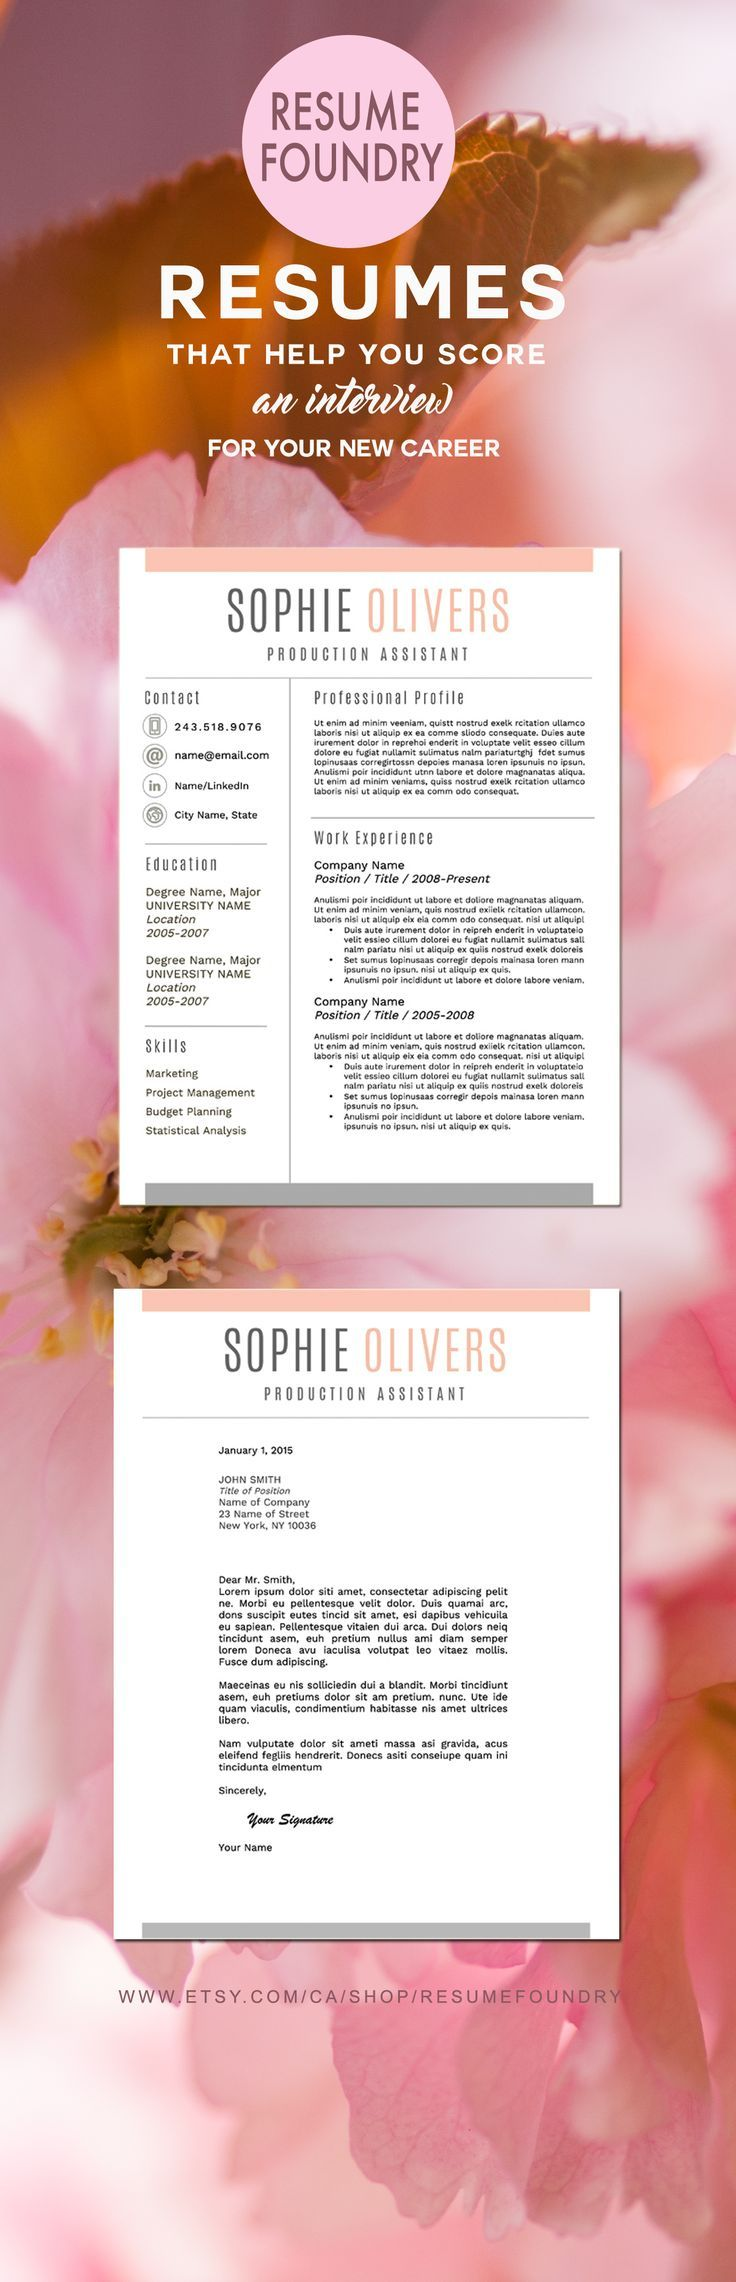 best ideas about resume templates resume resume stylish and modern resume template cv template cover letter for ms word one two three page resume template references